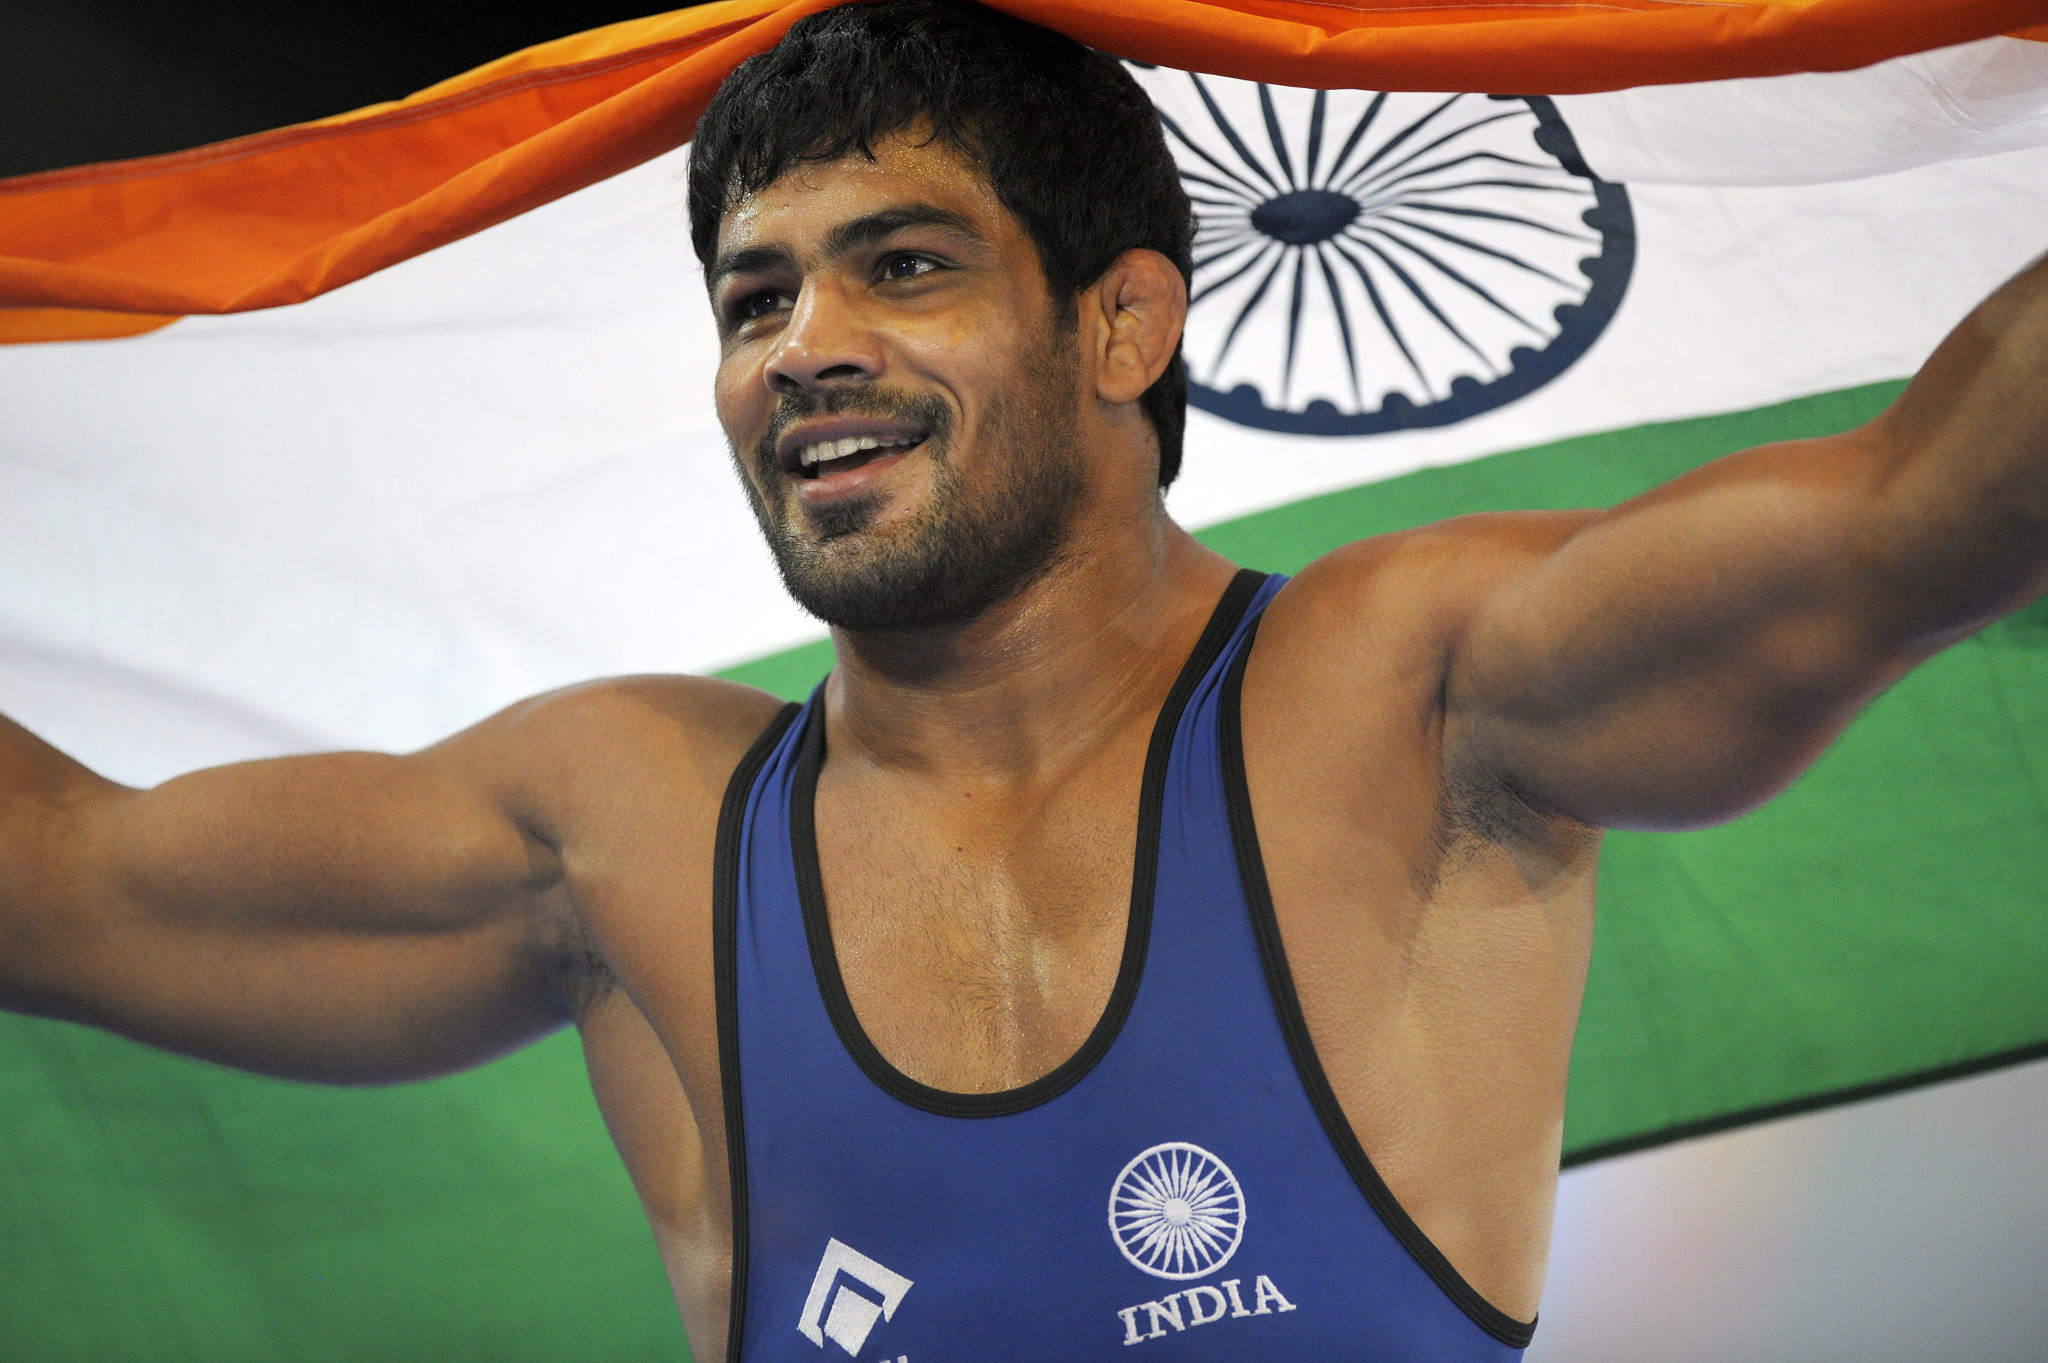 Kumar takes title at Commonwealth Wrestling Championships